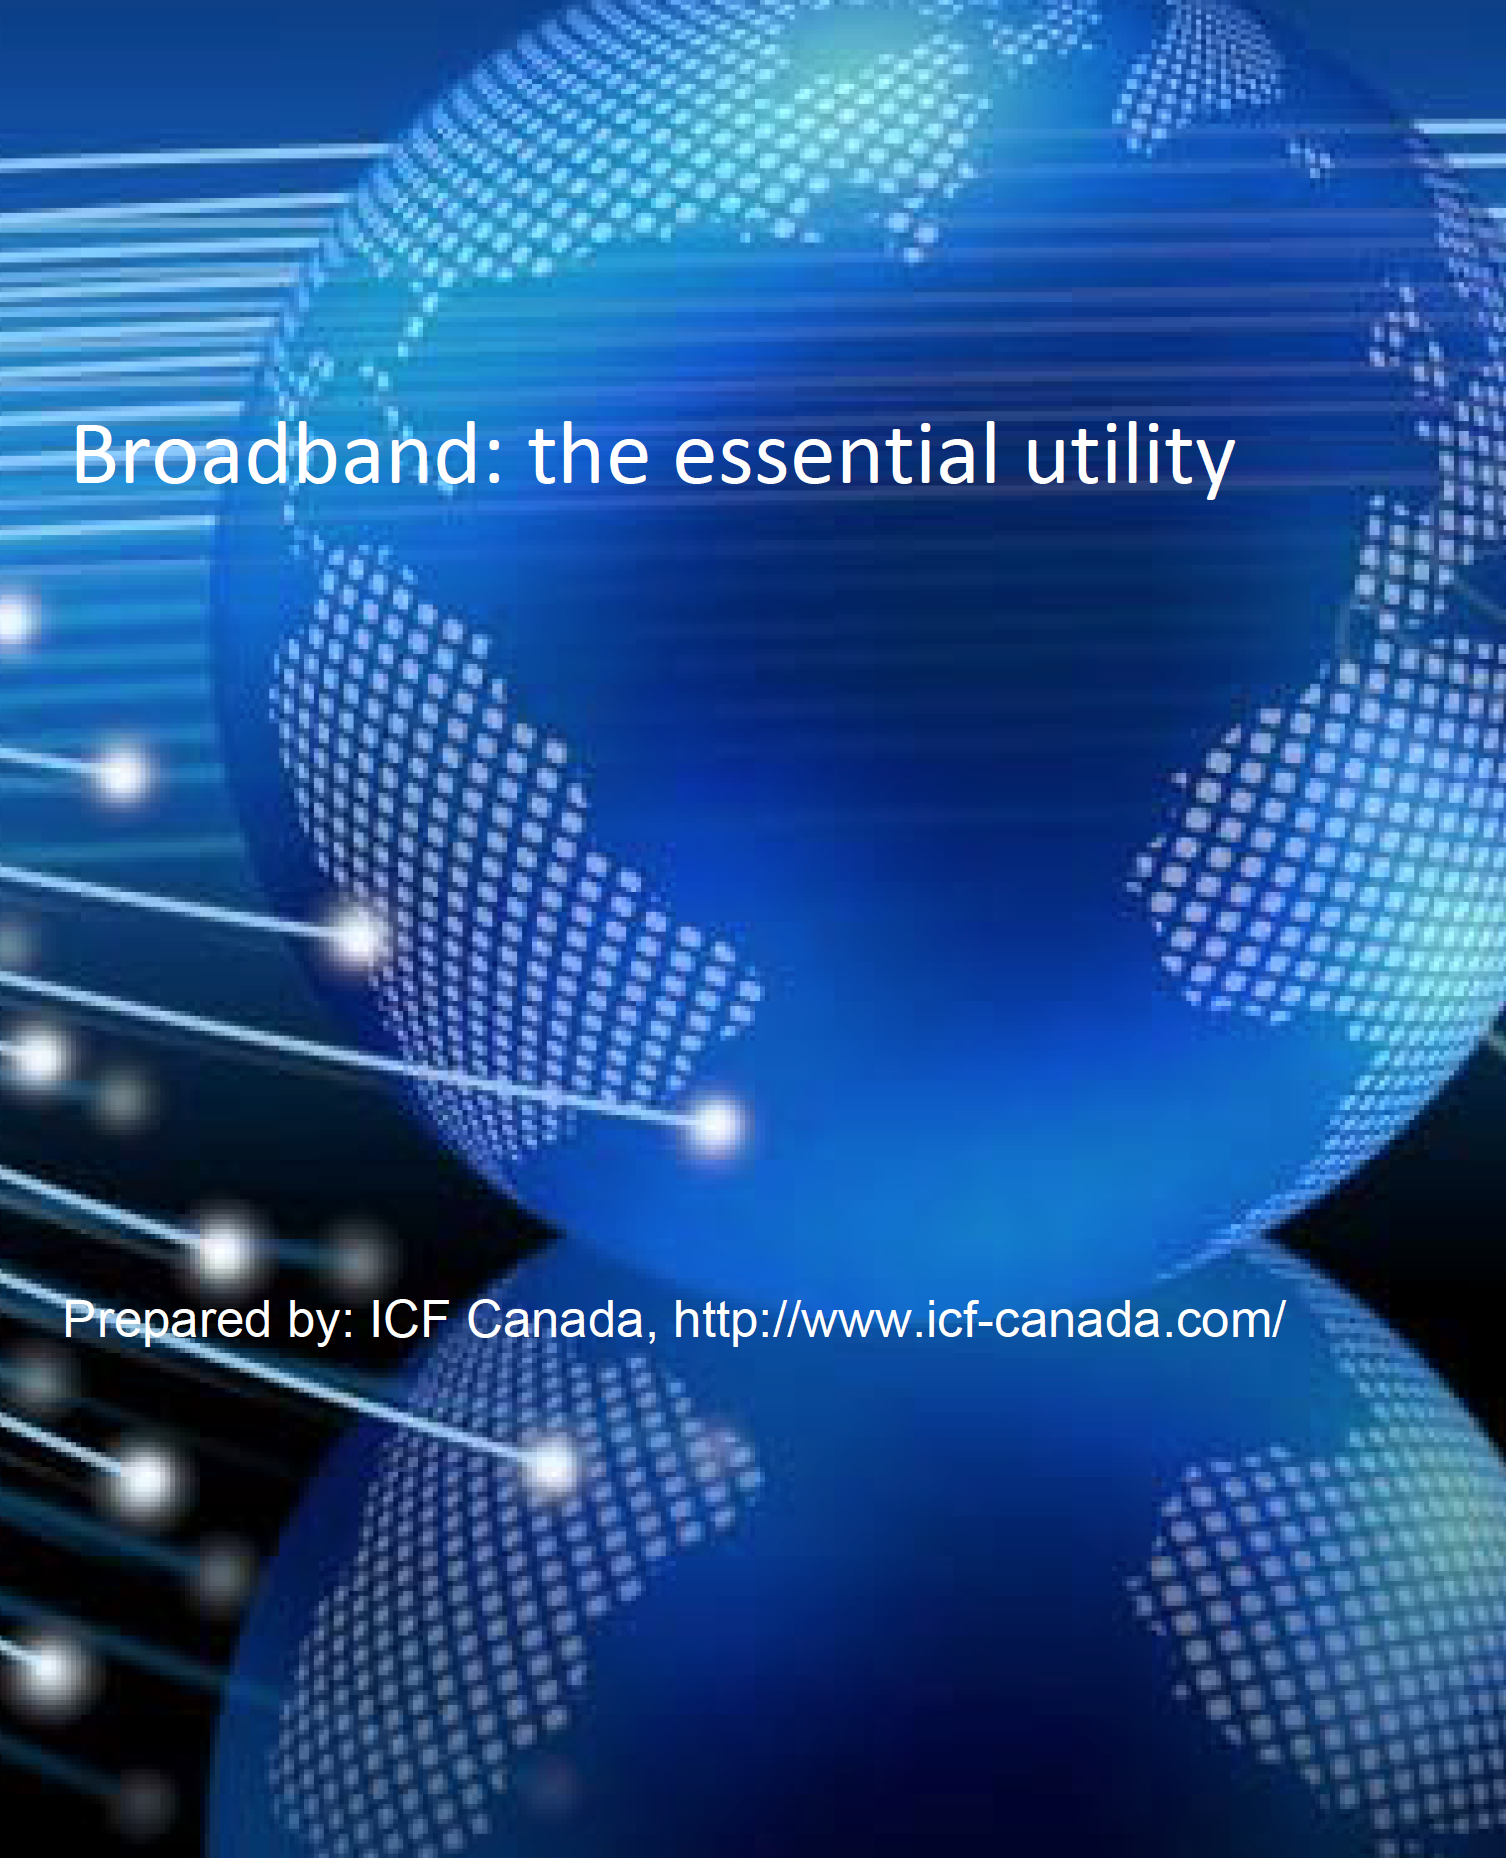 Broadband-Utility-ICF-Canada-Position-Paper.png